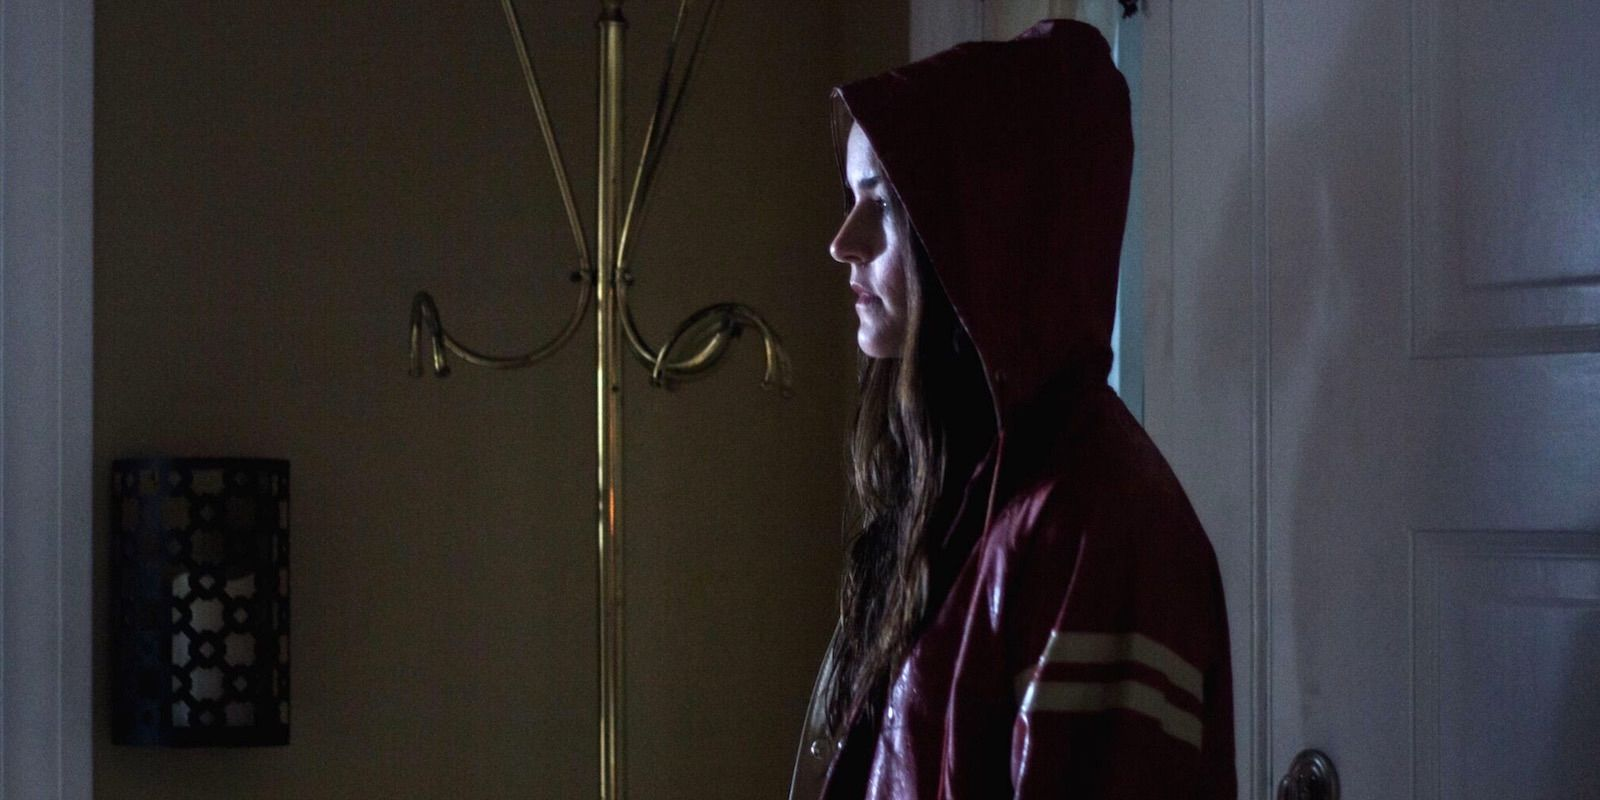 Amityville Murders Trailer Explores Famous American Horror